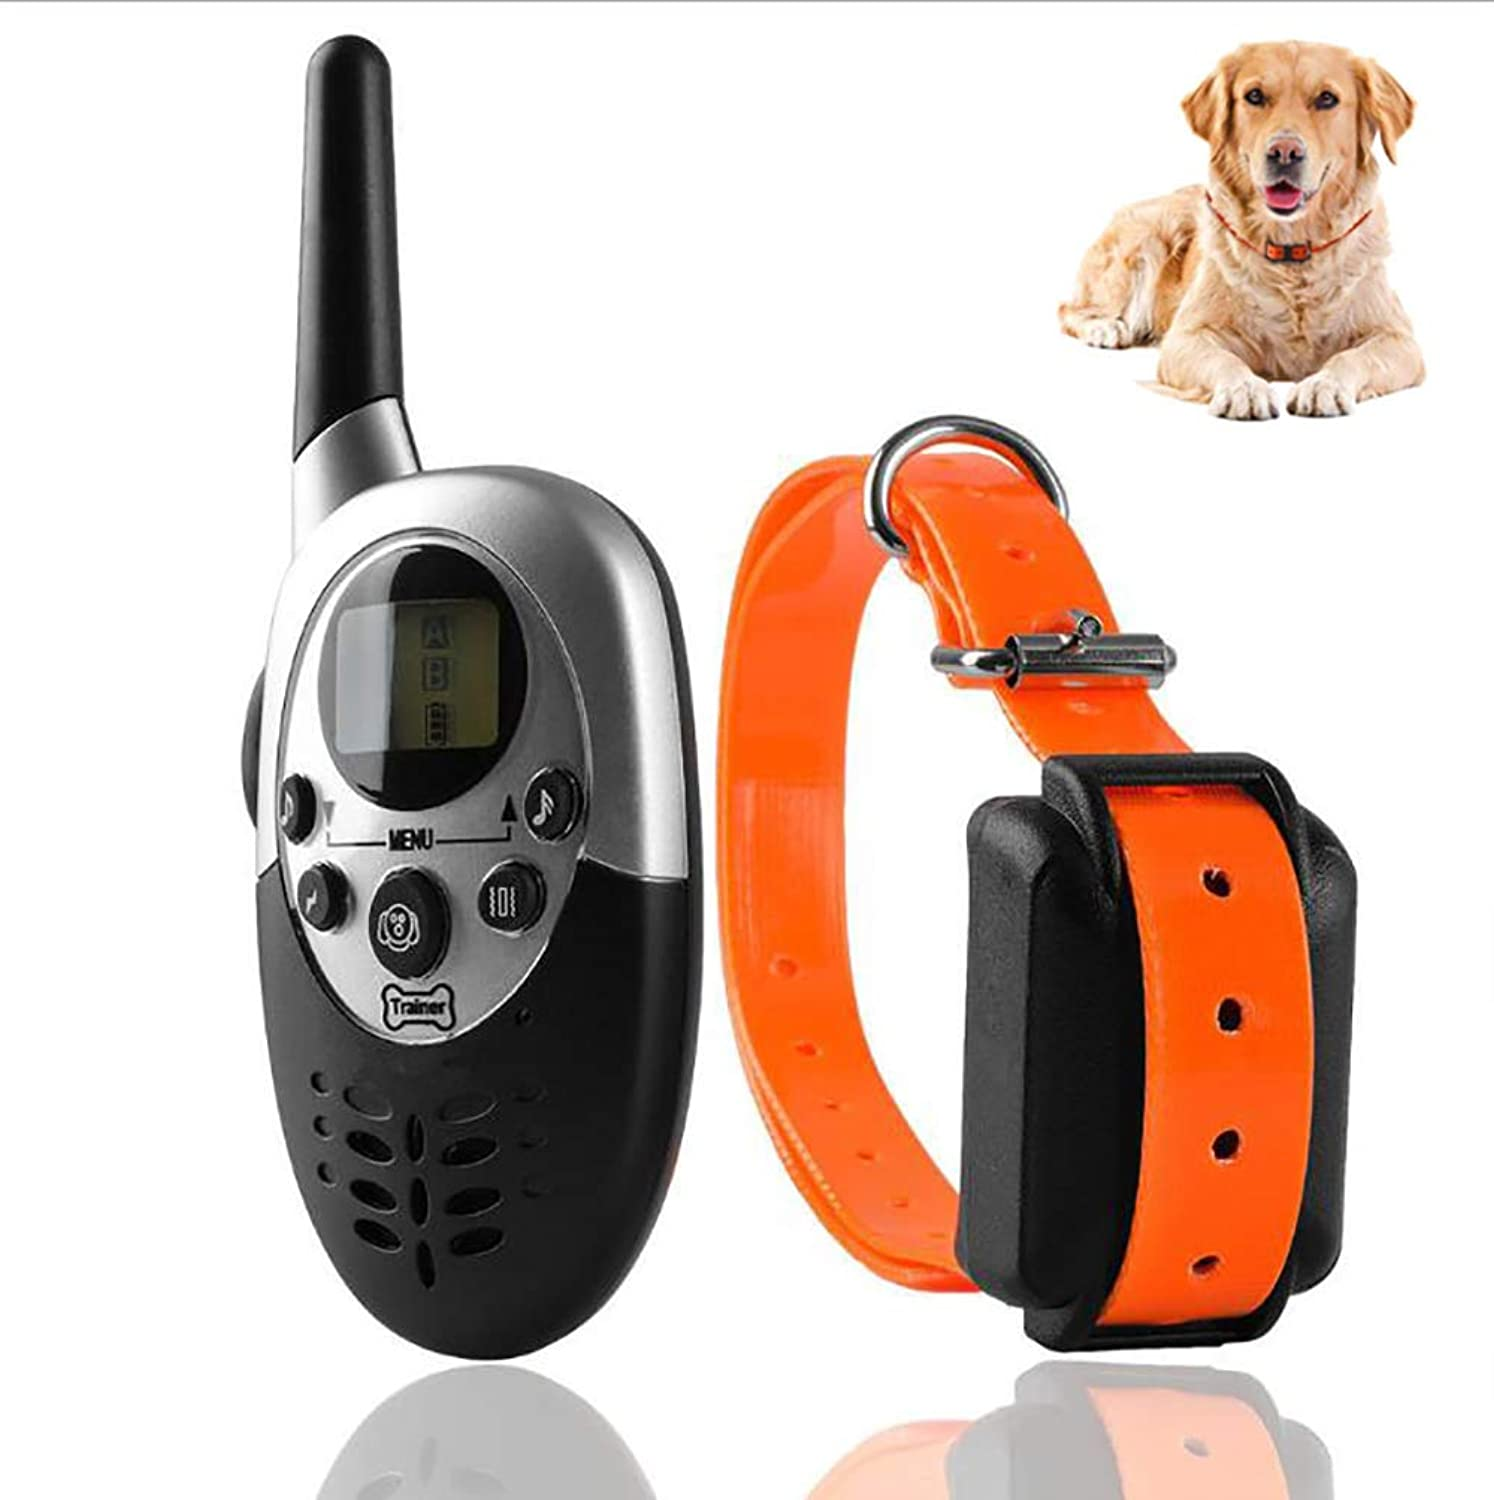 Dog Training Collar,1000M Professional Remote Control Waterproof and Rechargeable Dog Training Collar with Remote Control, Shock Vibration   Light Sound 4 Functions